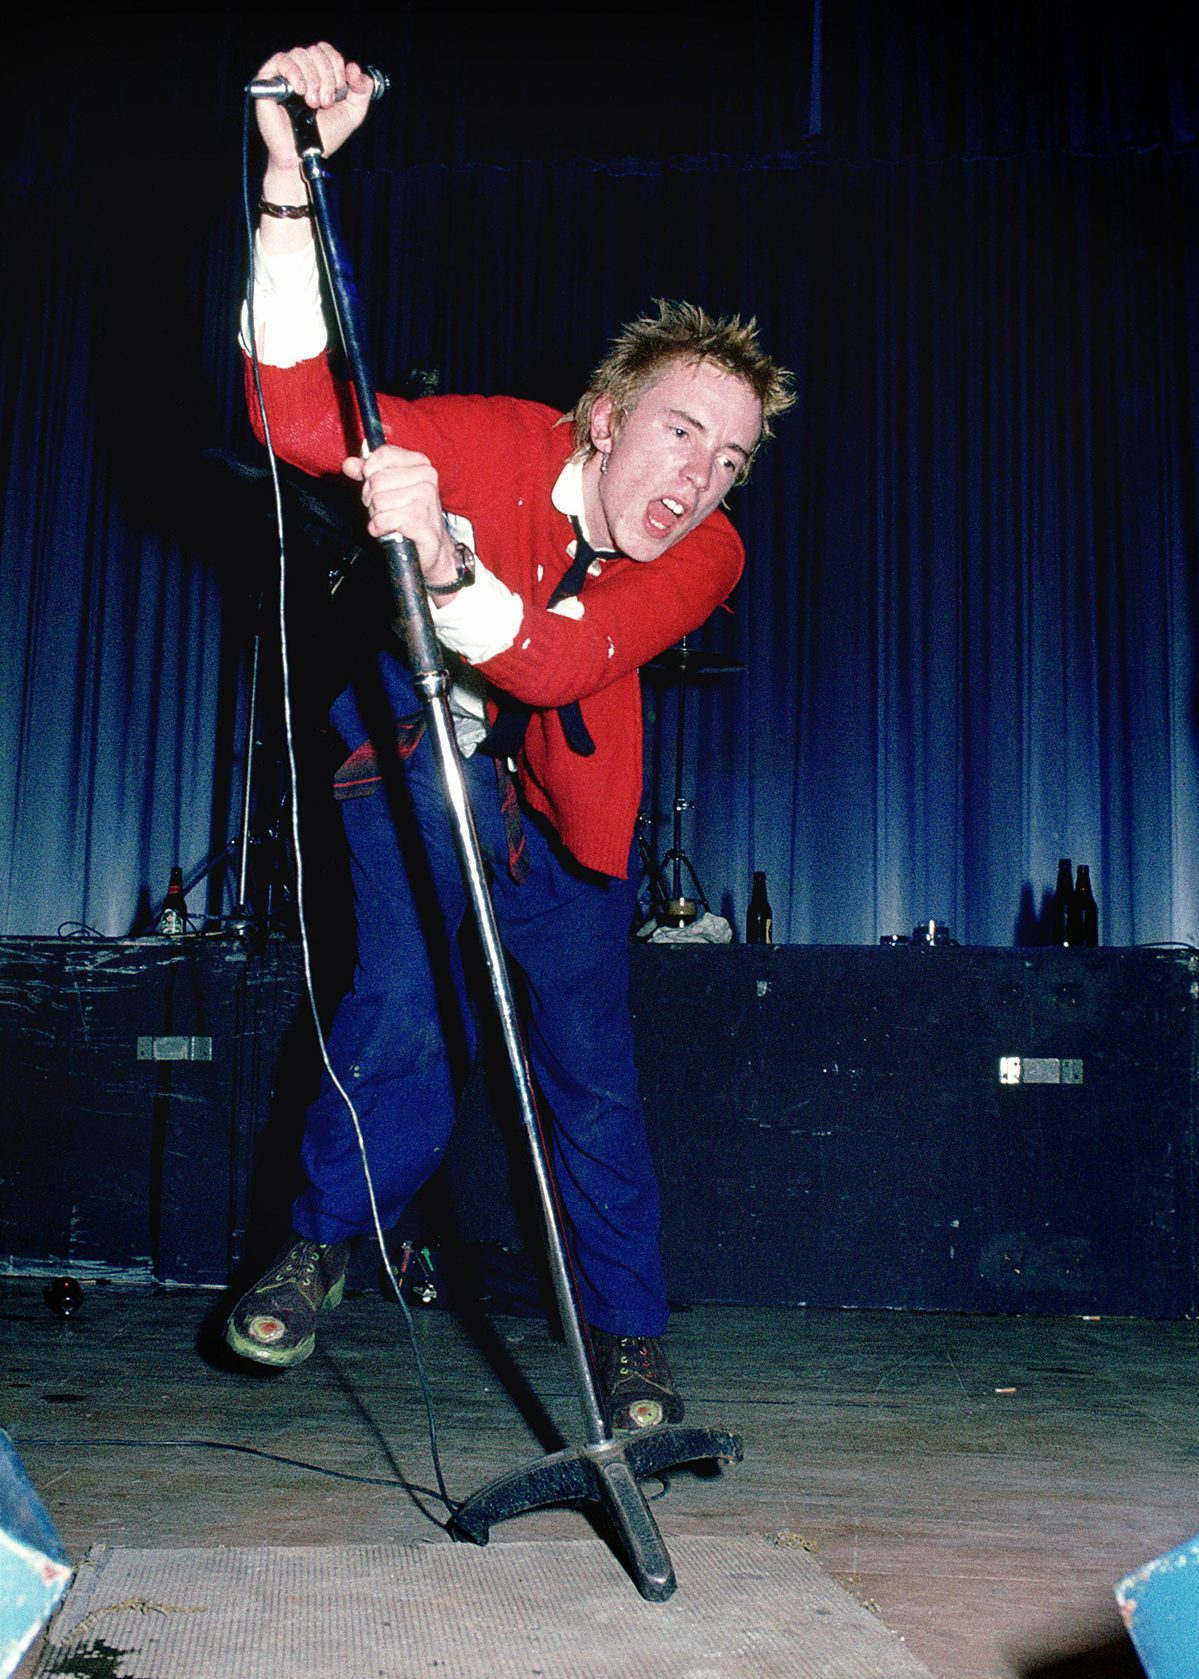 The Sex Pistols' Johnny Rotten is Not Punking Americans, He's Just Contrarian